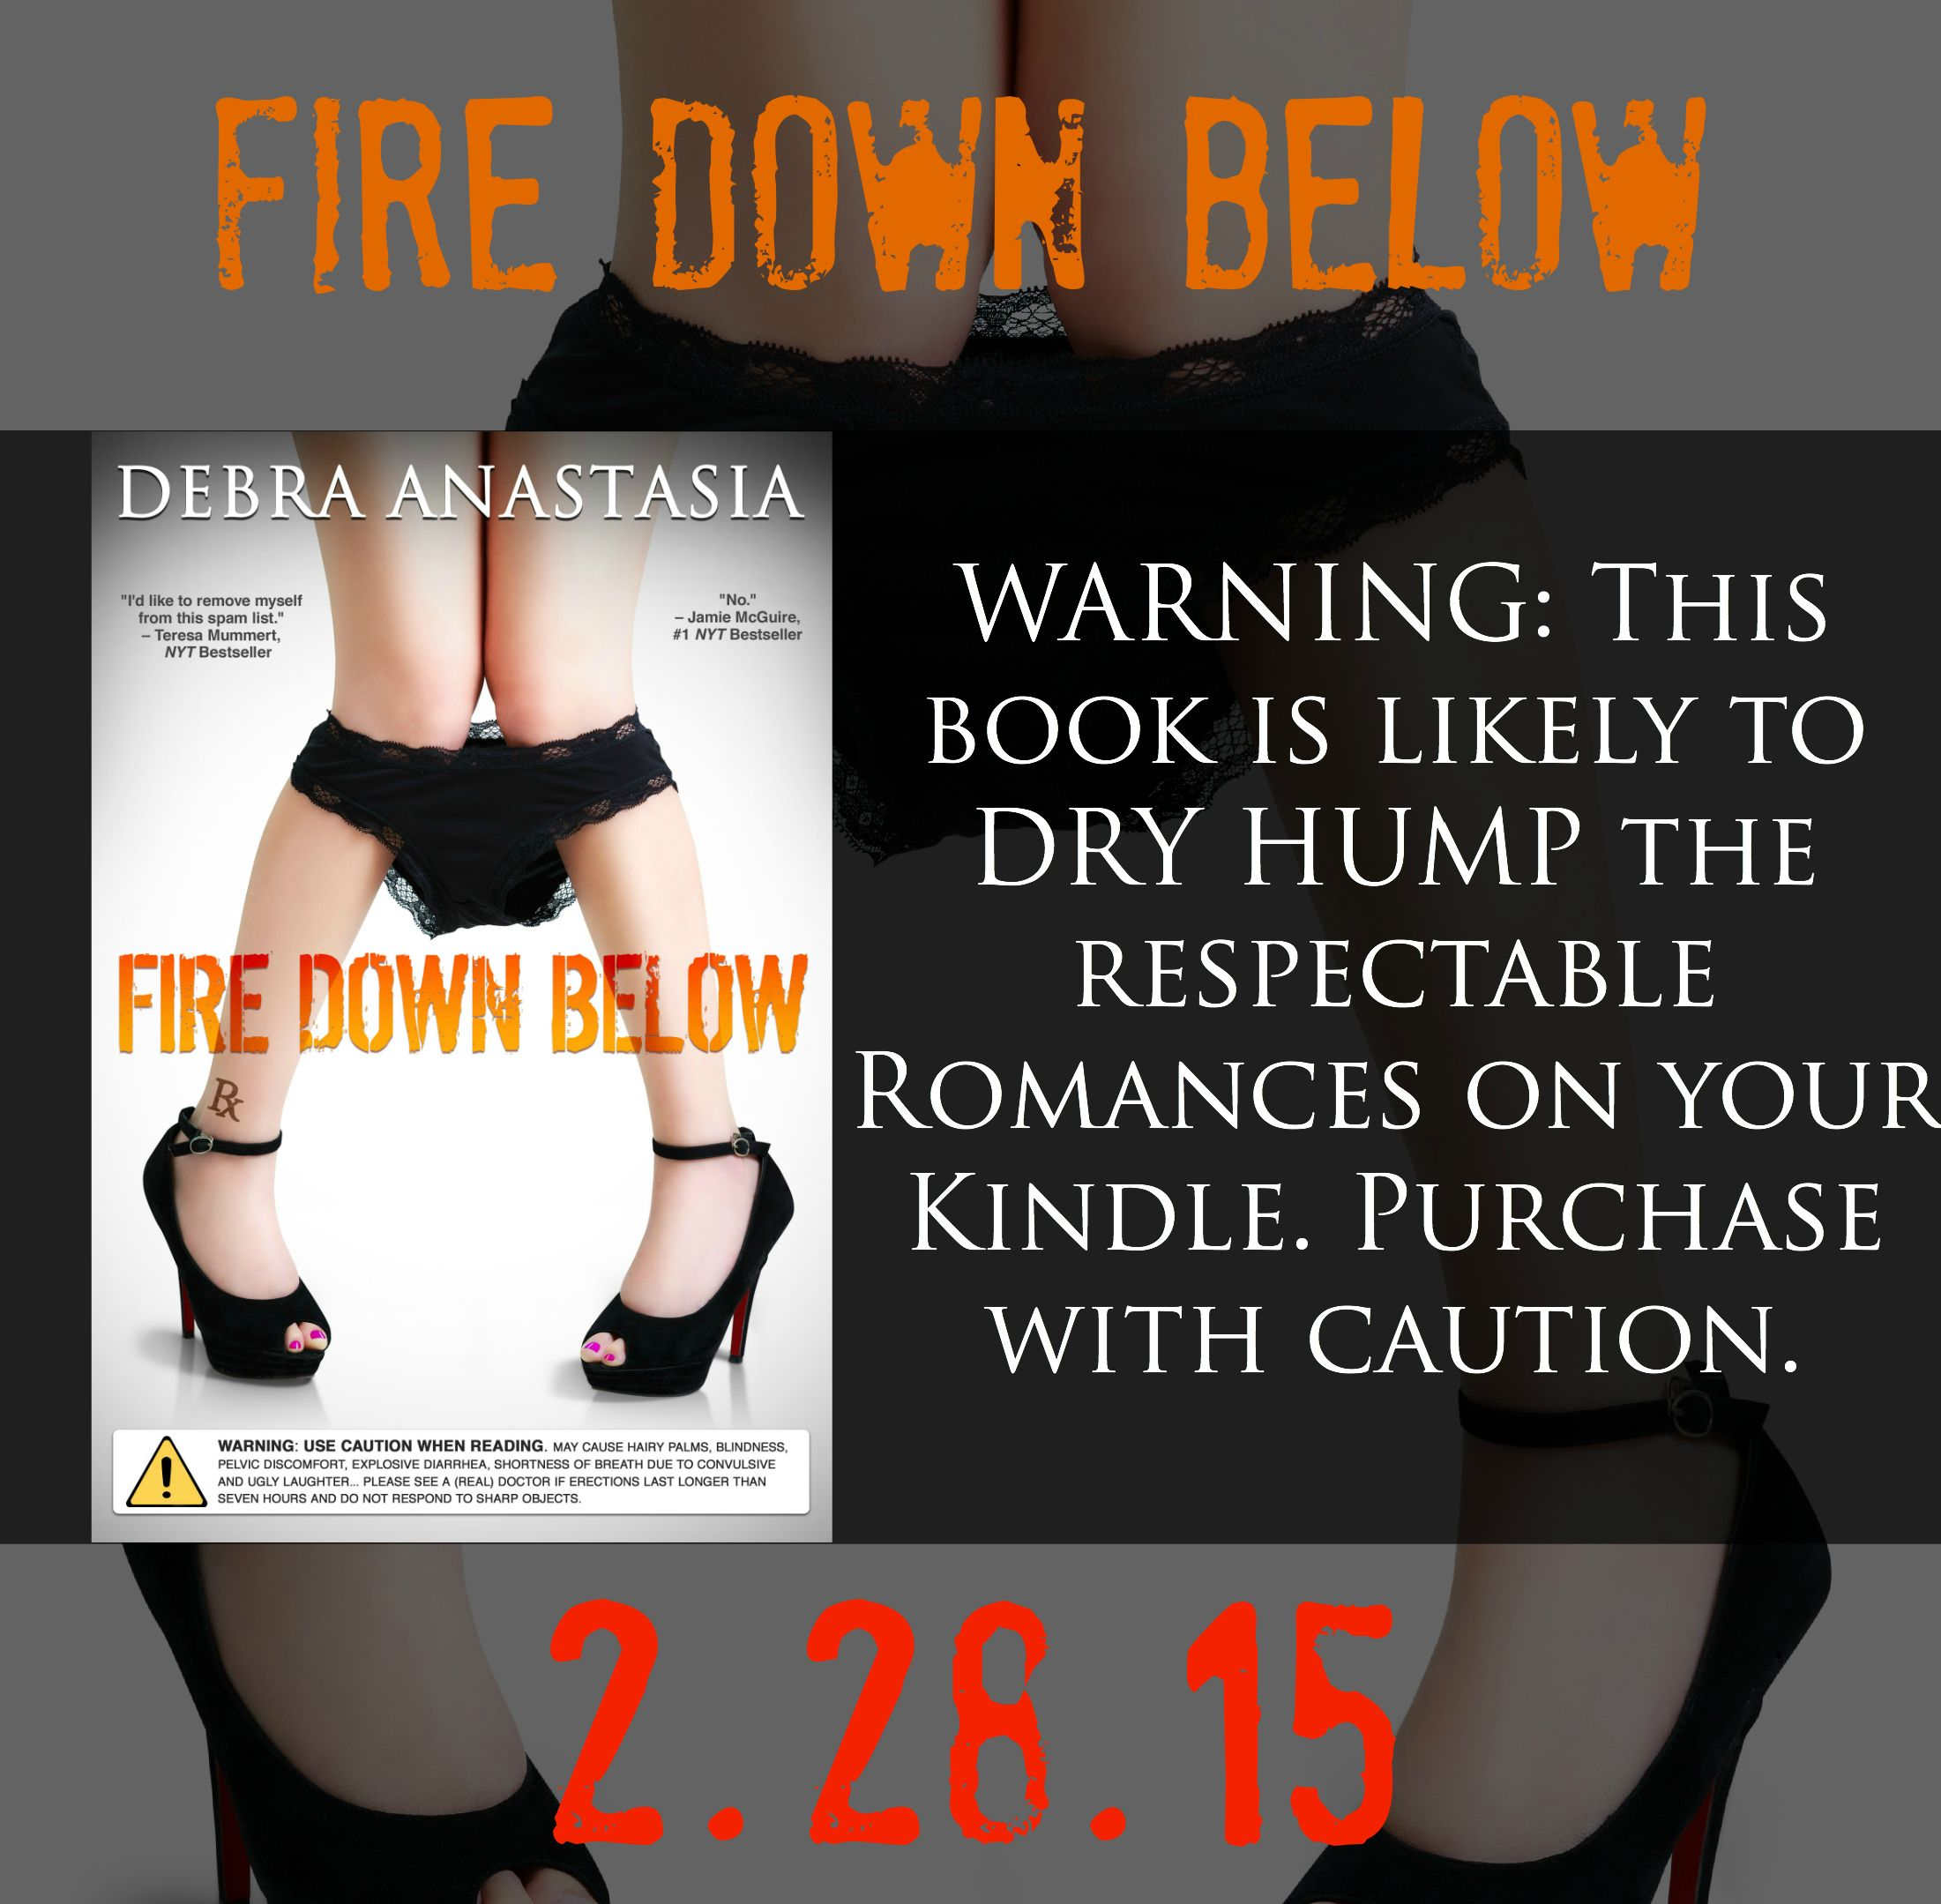 This is the horrible truth right here. #FireDownBelow Pre-Order amzn.to/1DlJyMo